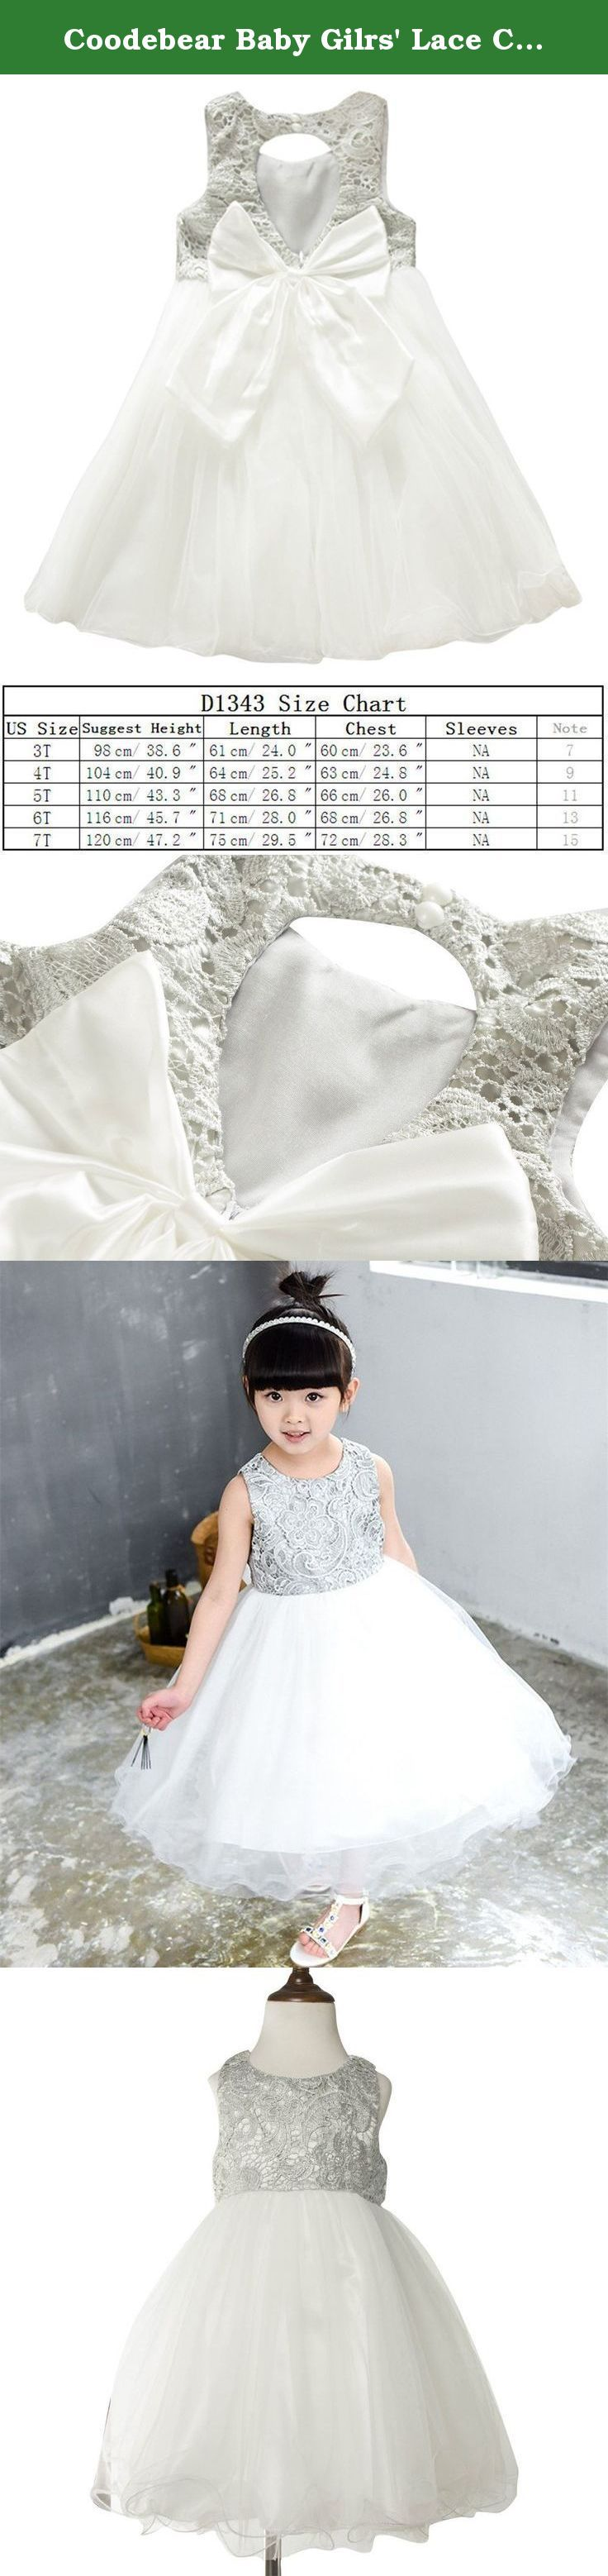 Coodebear Baby Gilrs' Lace Cotton Backless Multilayer Tutu Dress 7T. girls party dress, comfortable lace and tulle material,made in China, has professional designers, produced by big factories, exquisite workmanship, first-class quality,Passed certificate of quality inspection, machine washable.